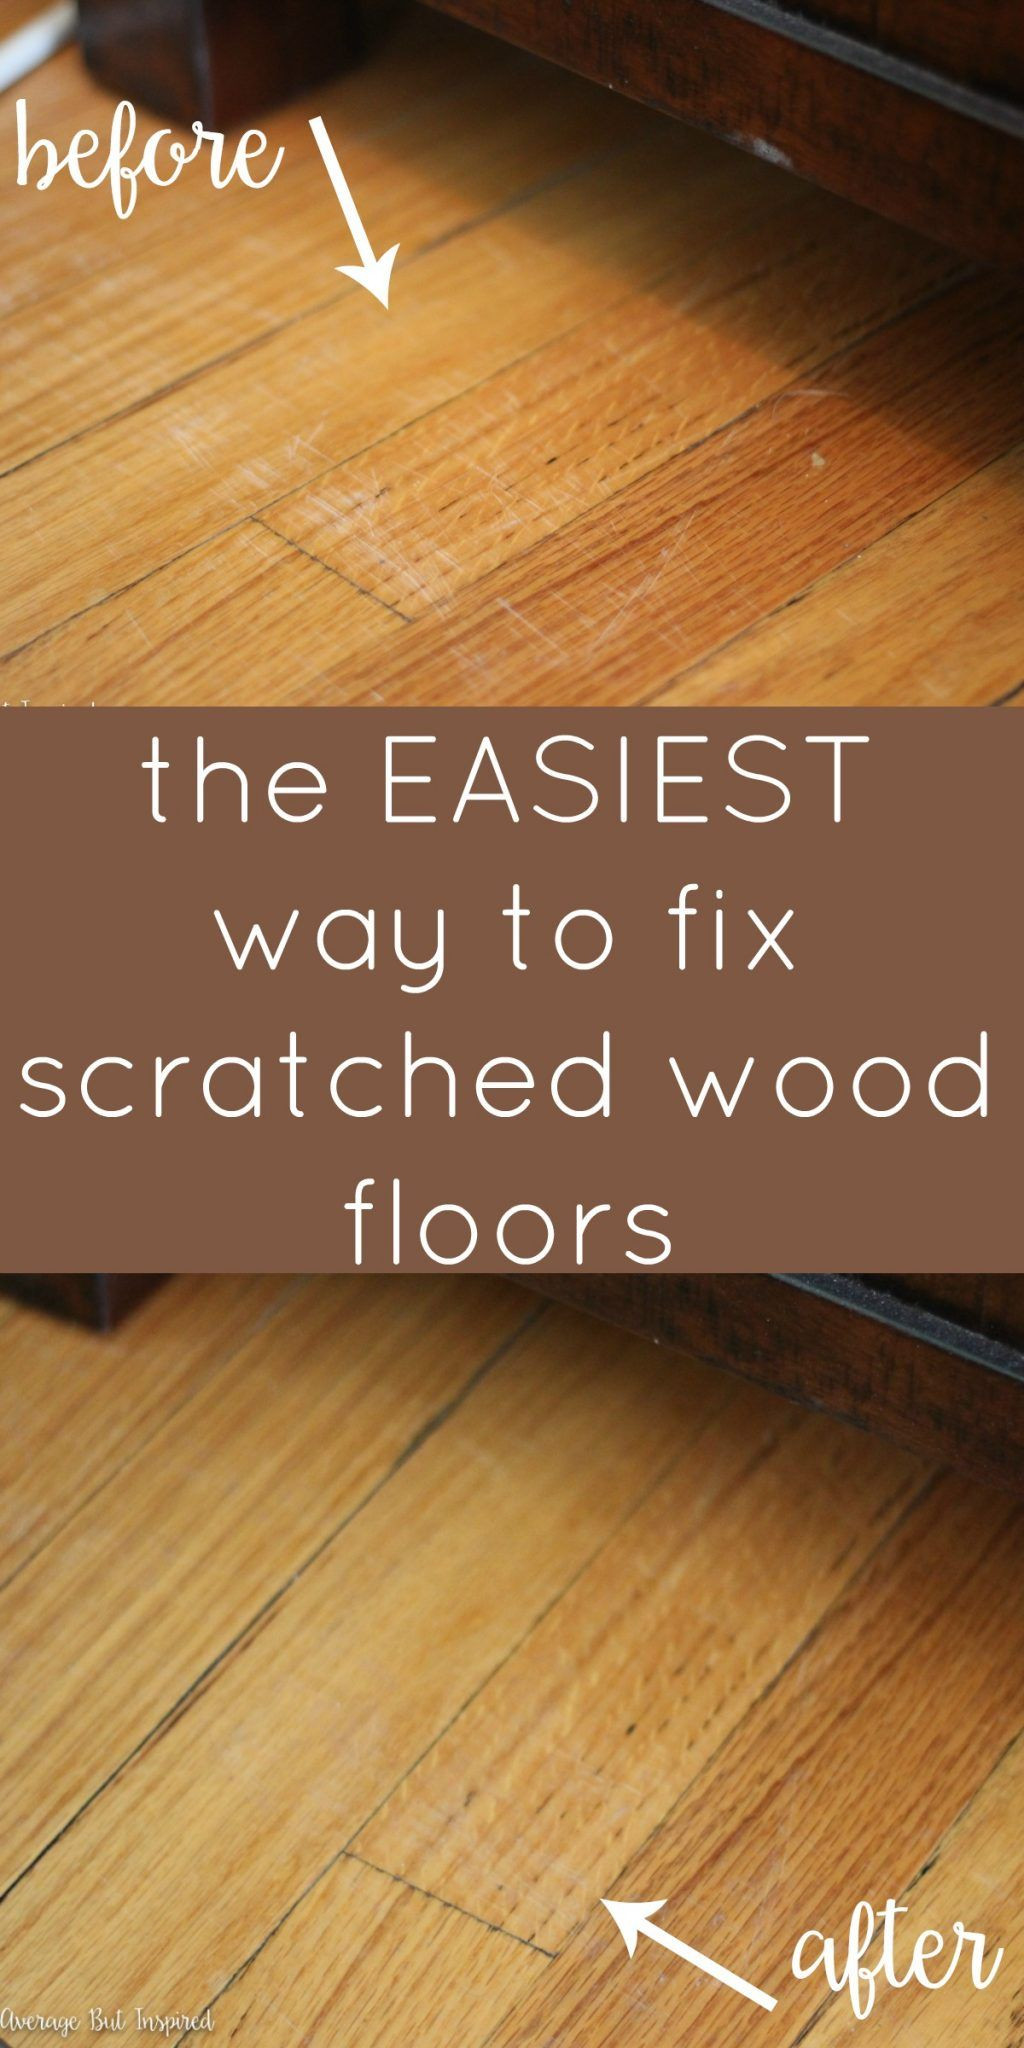 hardwood floor installation nj of prepossessing bathroom wall coverings vinyl or best flooring for throughout foxy how to repair scratches on wood furniture in how to fix scratched hardwood floors in